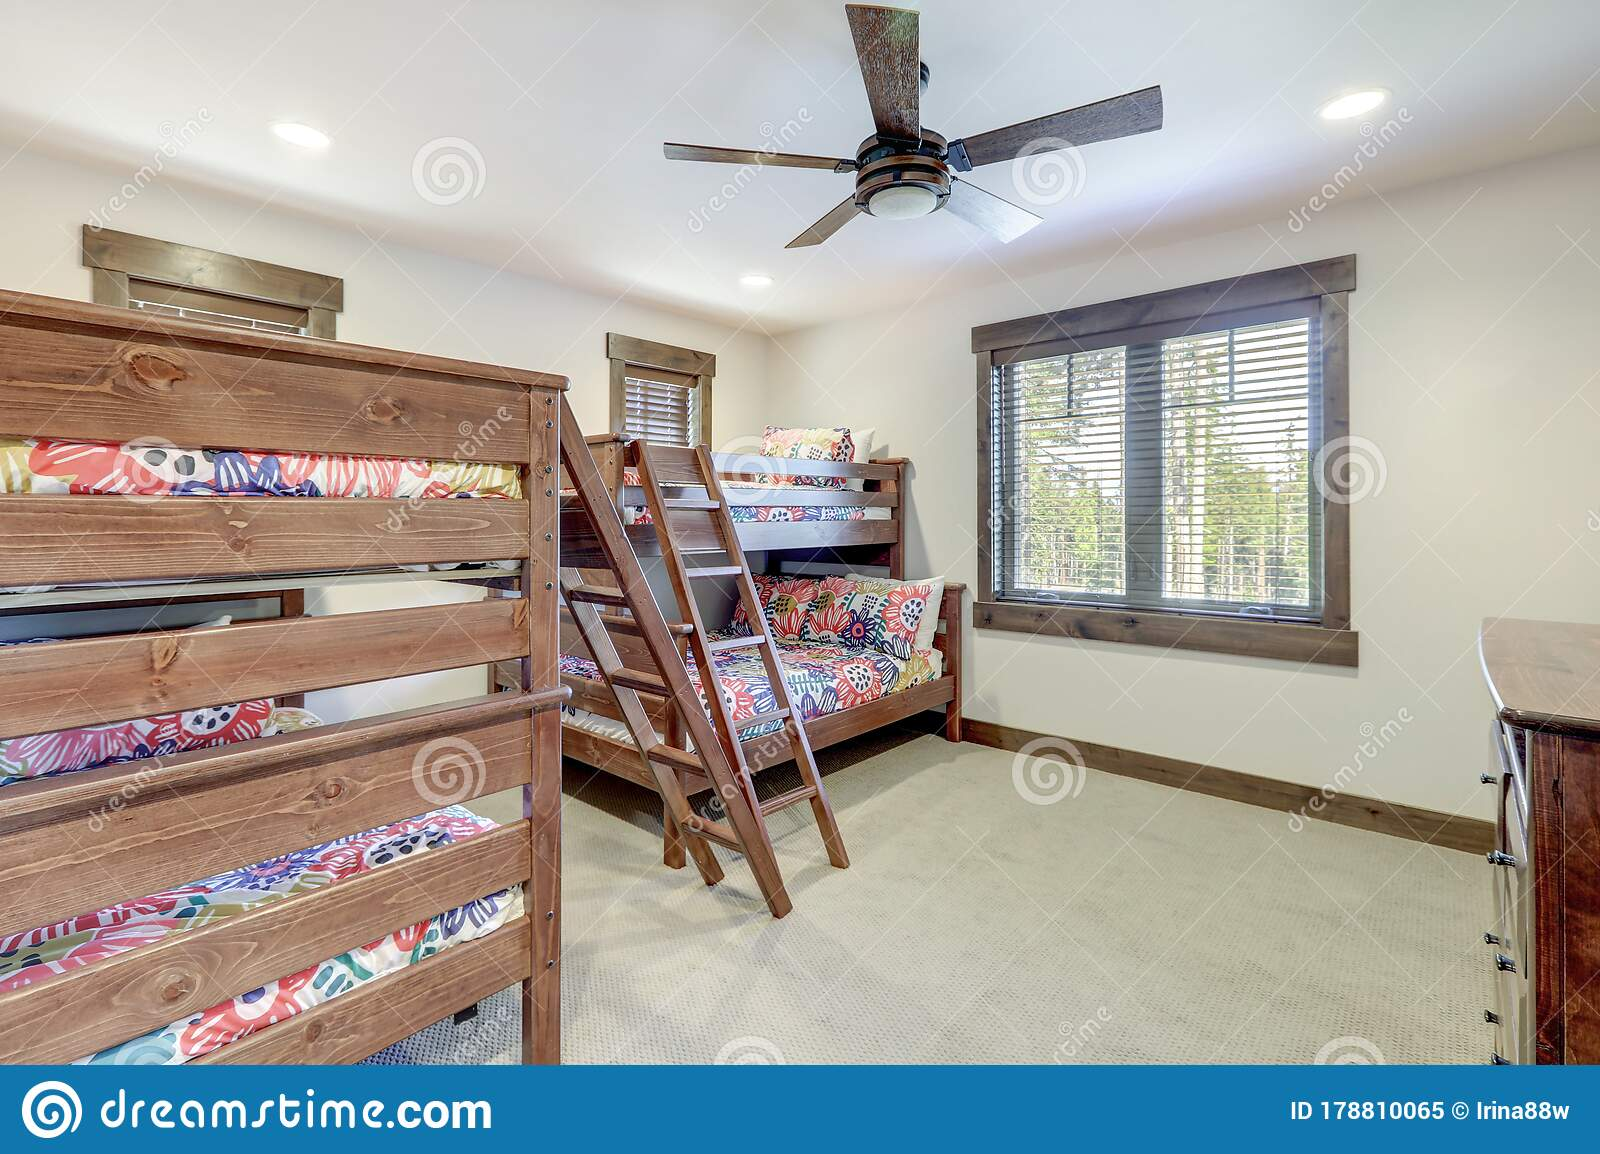 Bright New Bedroom With Two Bunk Beds With Colorful Bedding And Ceiling Fan Stock Image Image Of Estate Pillow 178810065